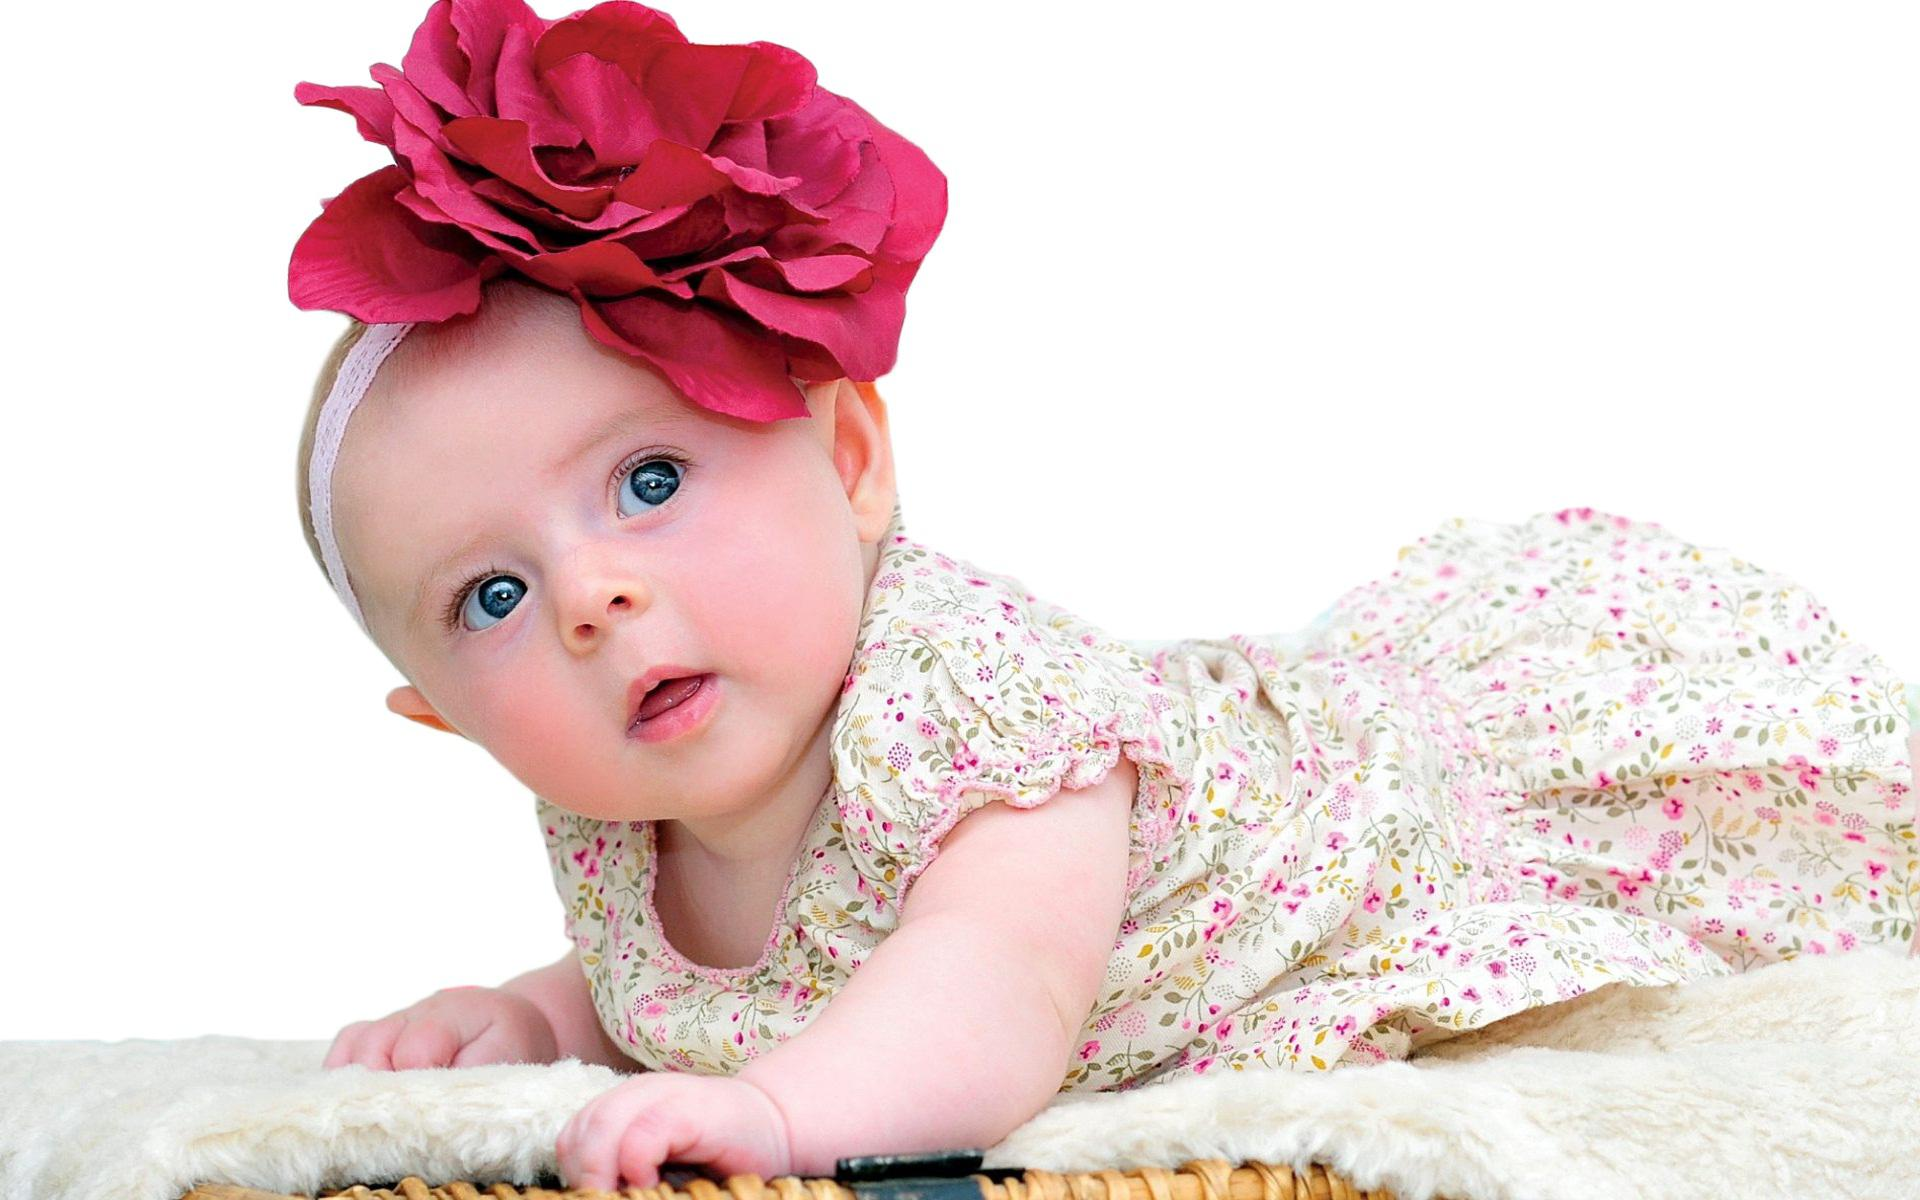 Cute Newborn Baby Hd Wallpaper Baby Photo Ideas Hd